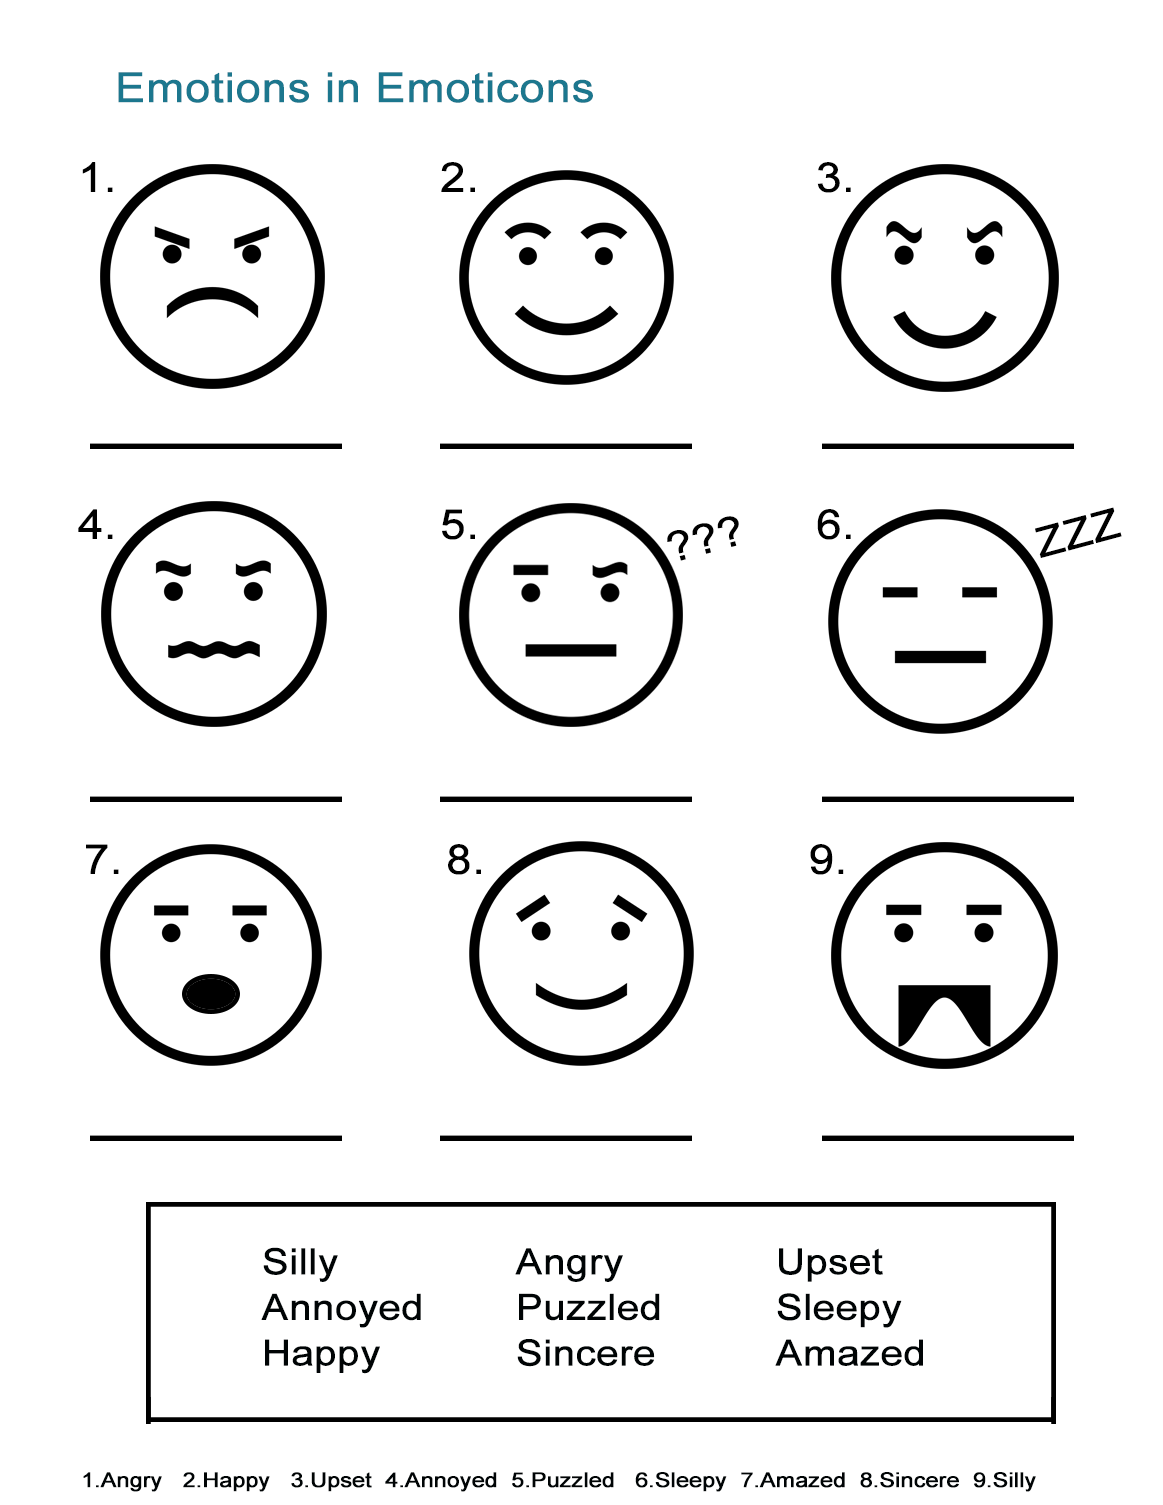 worksheet Emotions Worksheet 43 free esl worksheets that enable english language learners all 01 emotions worksheet